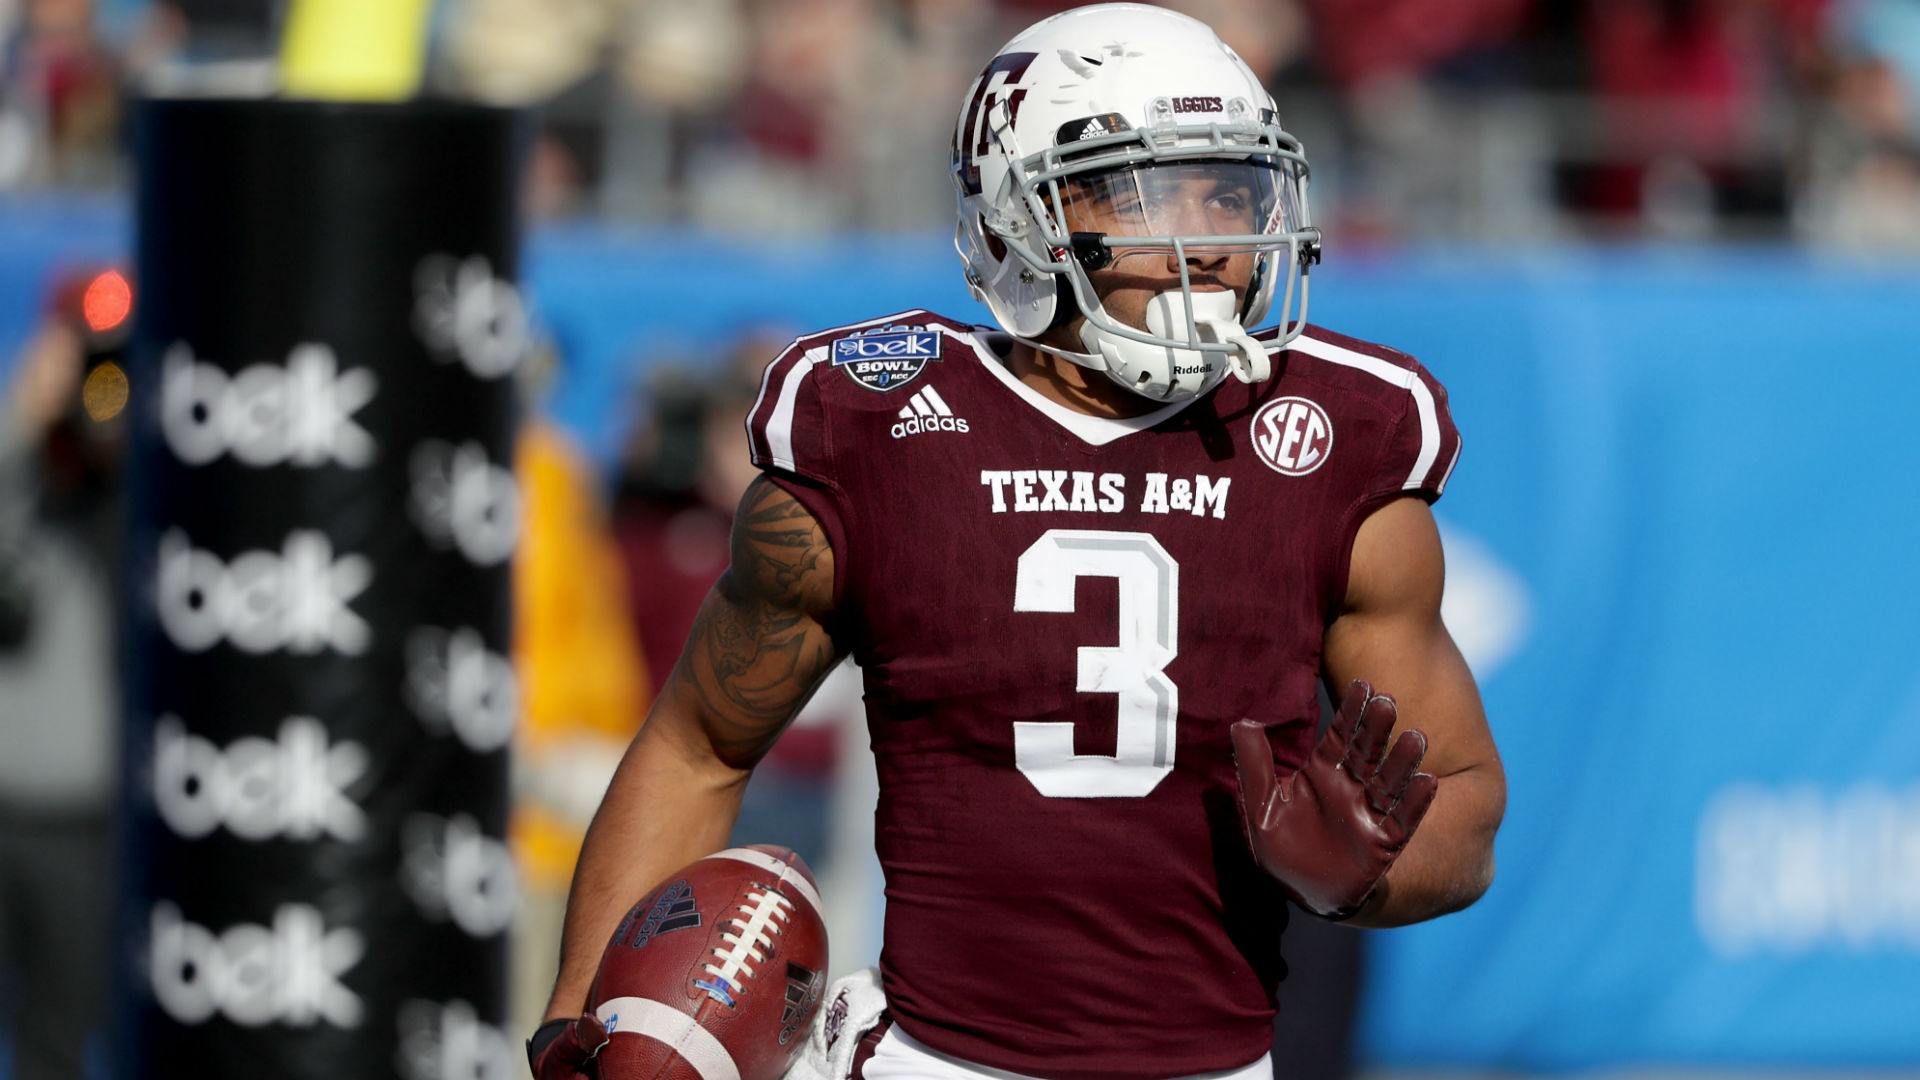 Former Texas A&M wide receiver Christian Kirk arrested for disorderly conduct